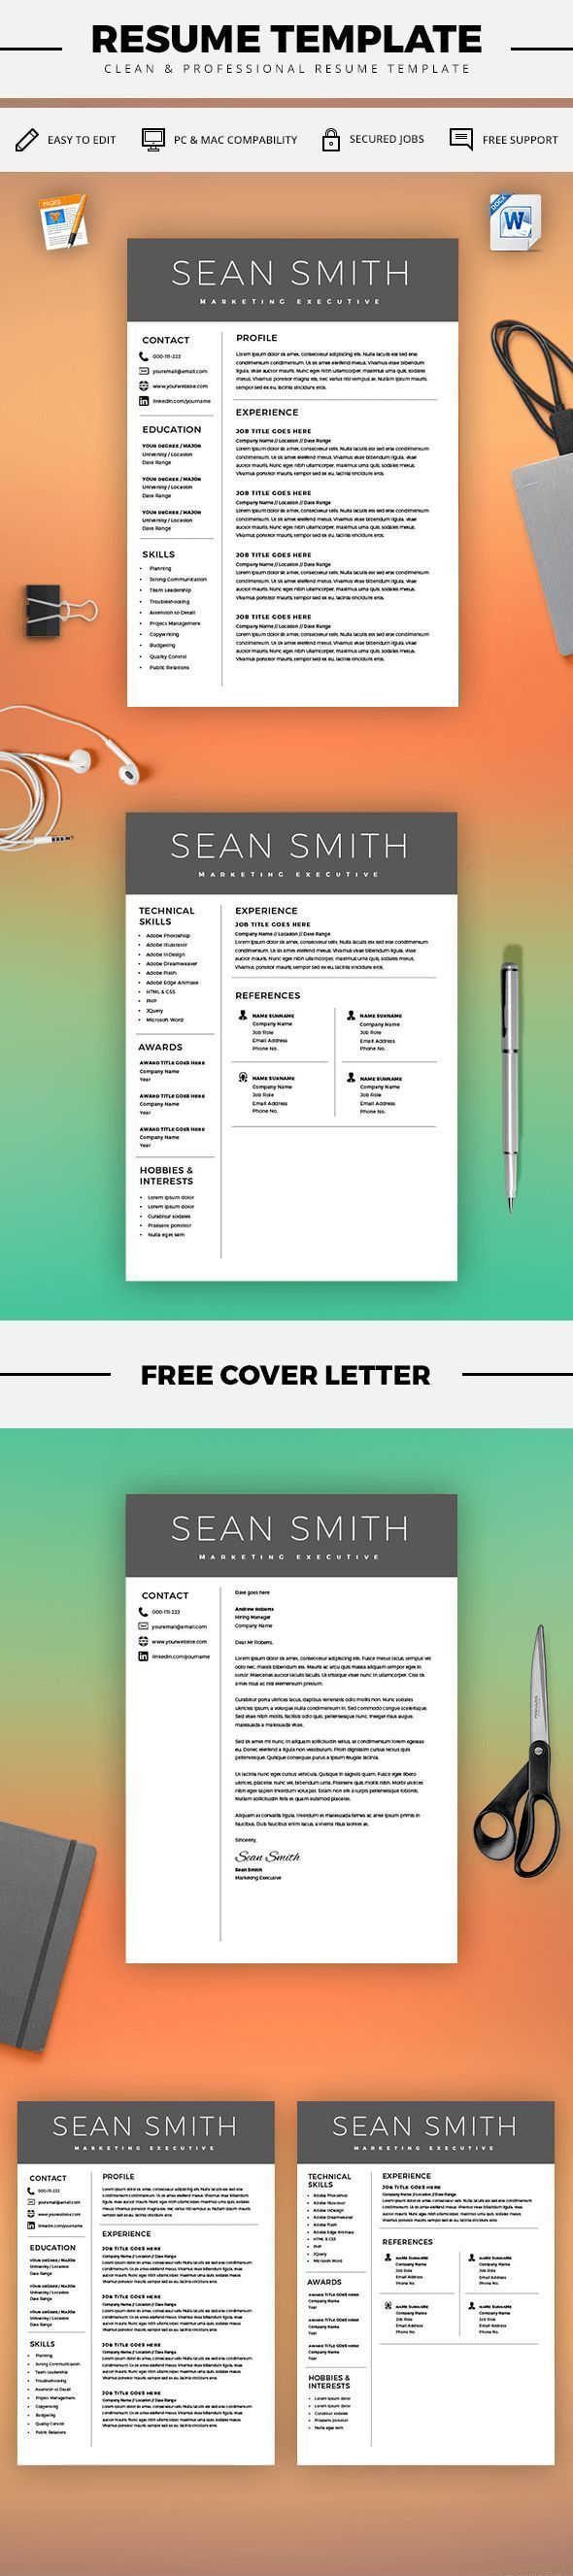 Microsoft Word Resume Templates For Mac Curriculum Vitae Template  Professional Resume Template  Cover